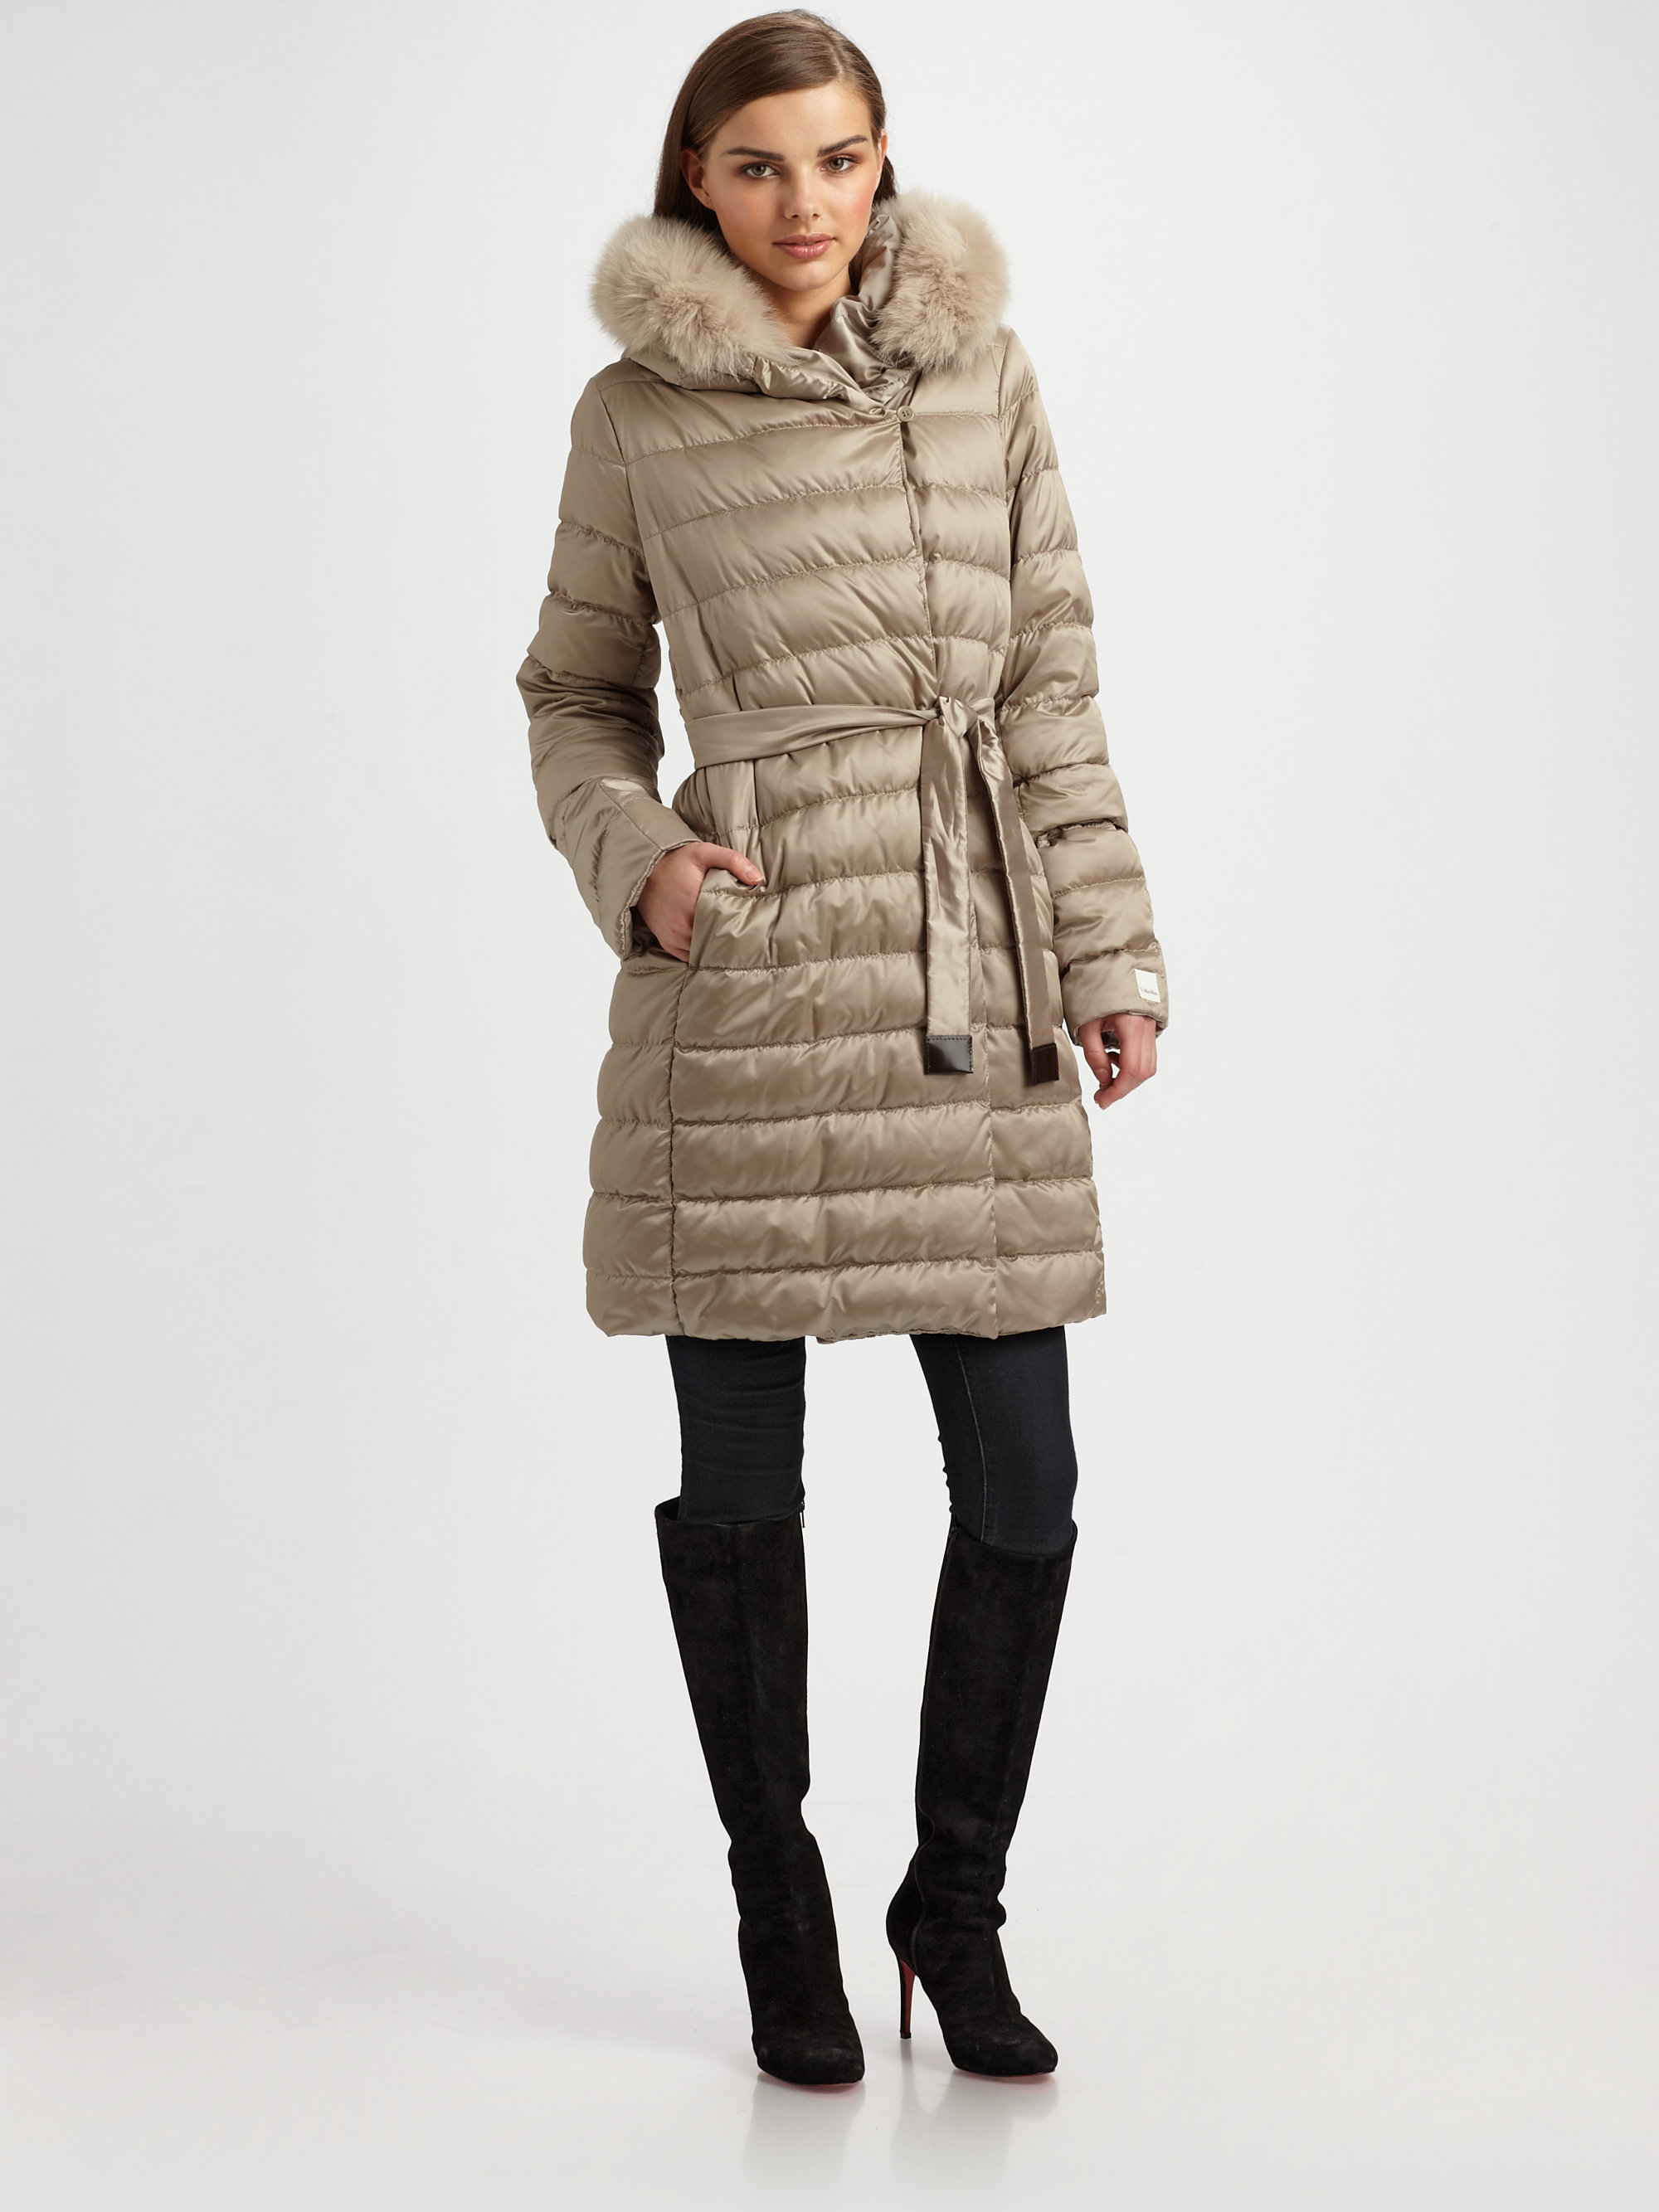 Max Mara Novef Cube Puffer Coat In Natural Lyst